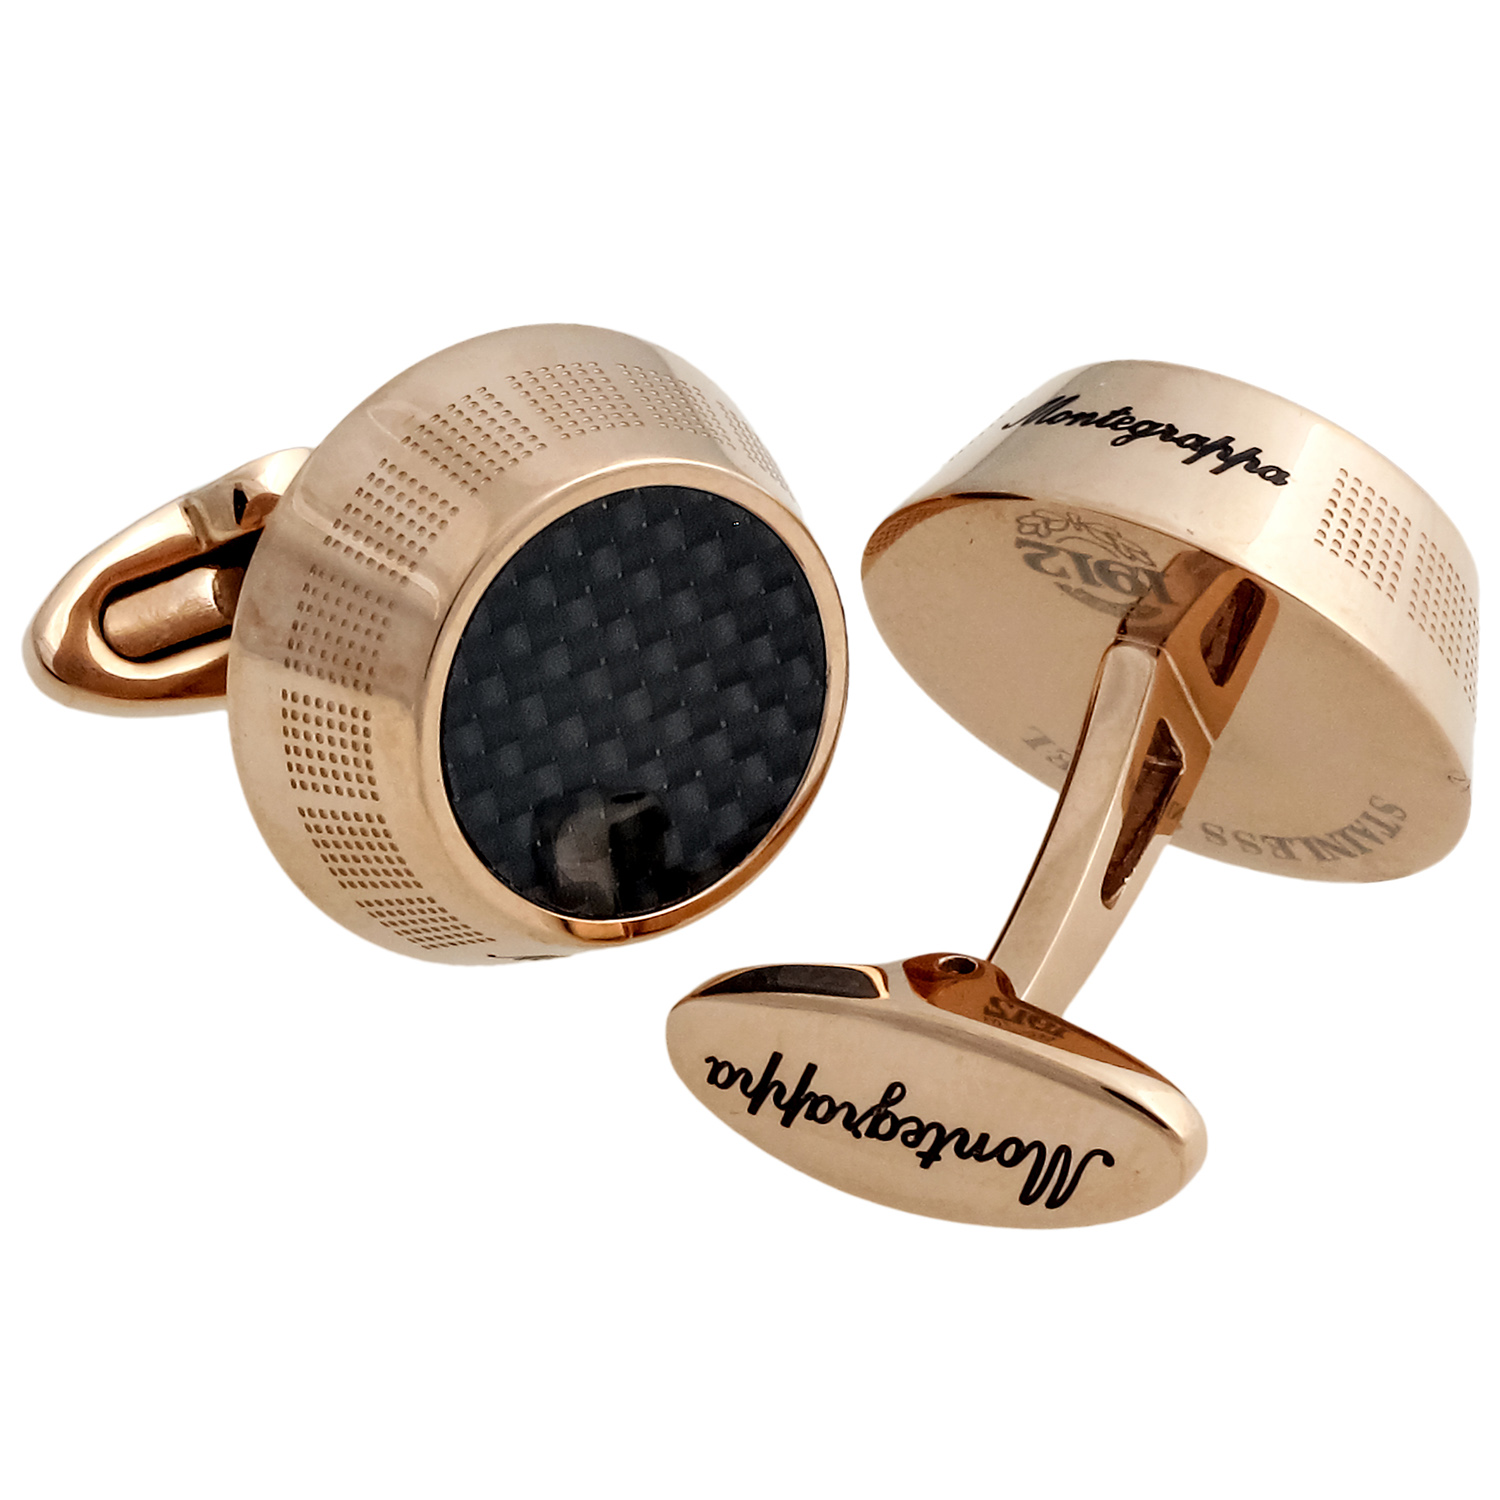 Miya 14K Rose Gold PVD Plated Brass & Carbon Basket Weave Cufflinks IDMYCLFR